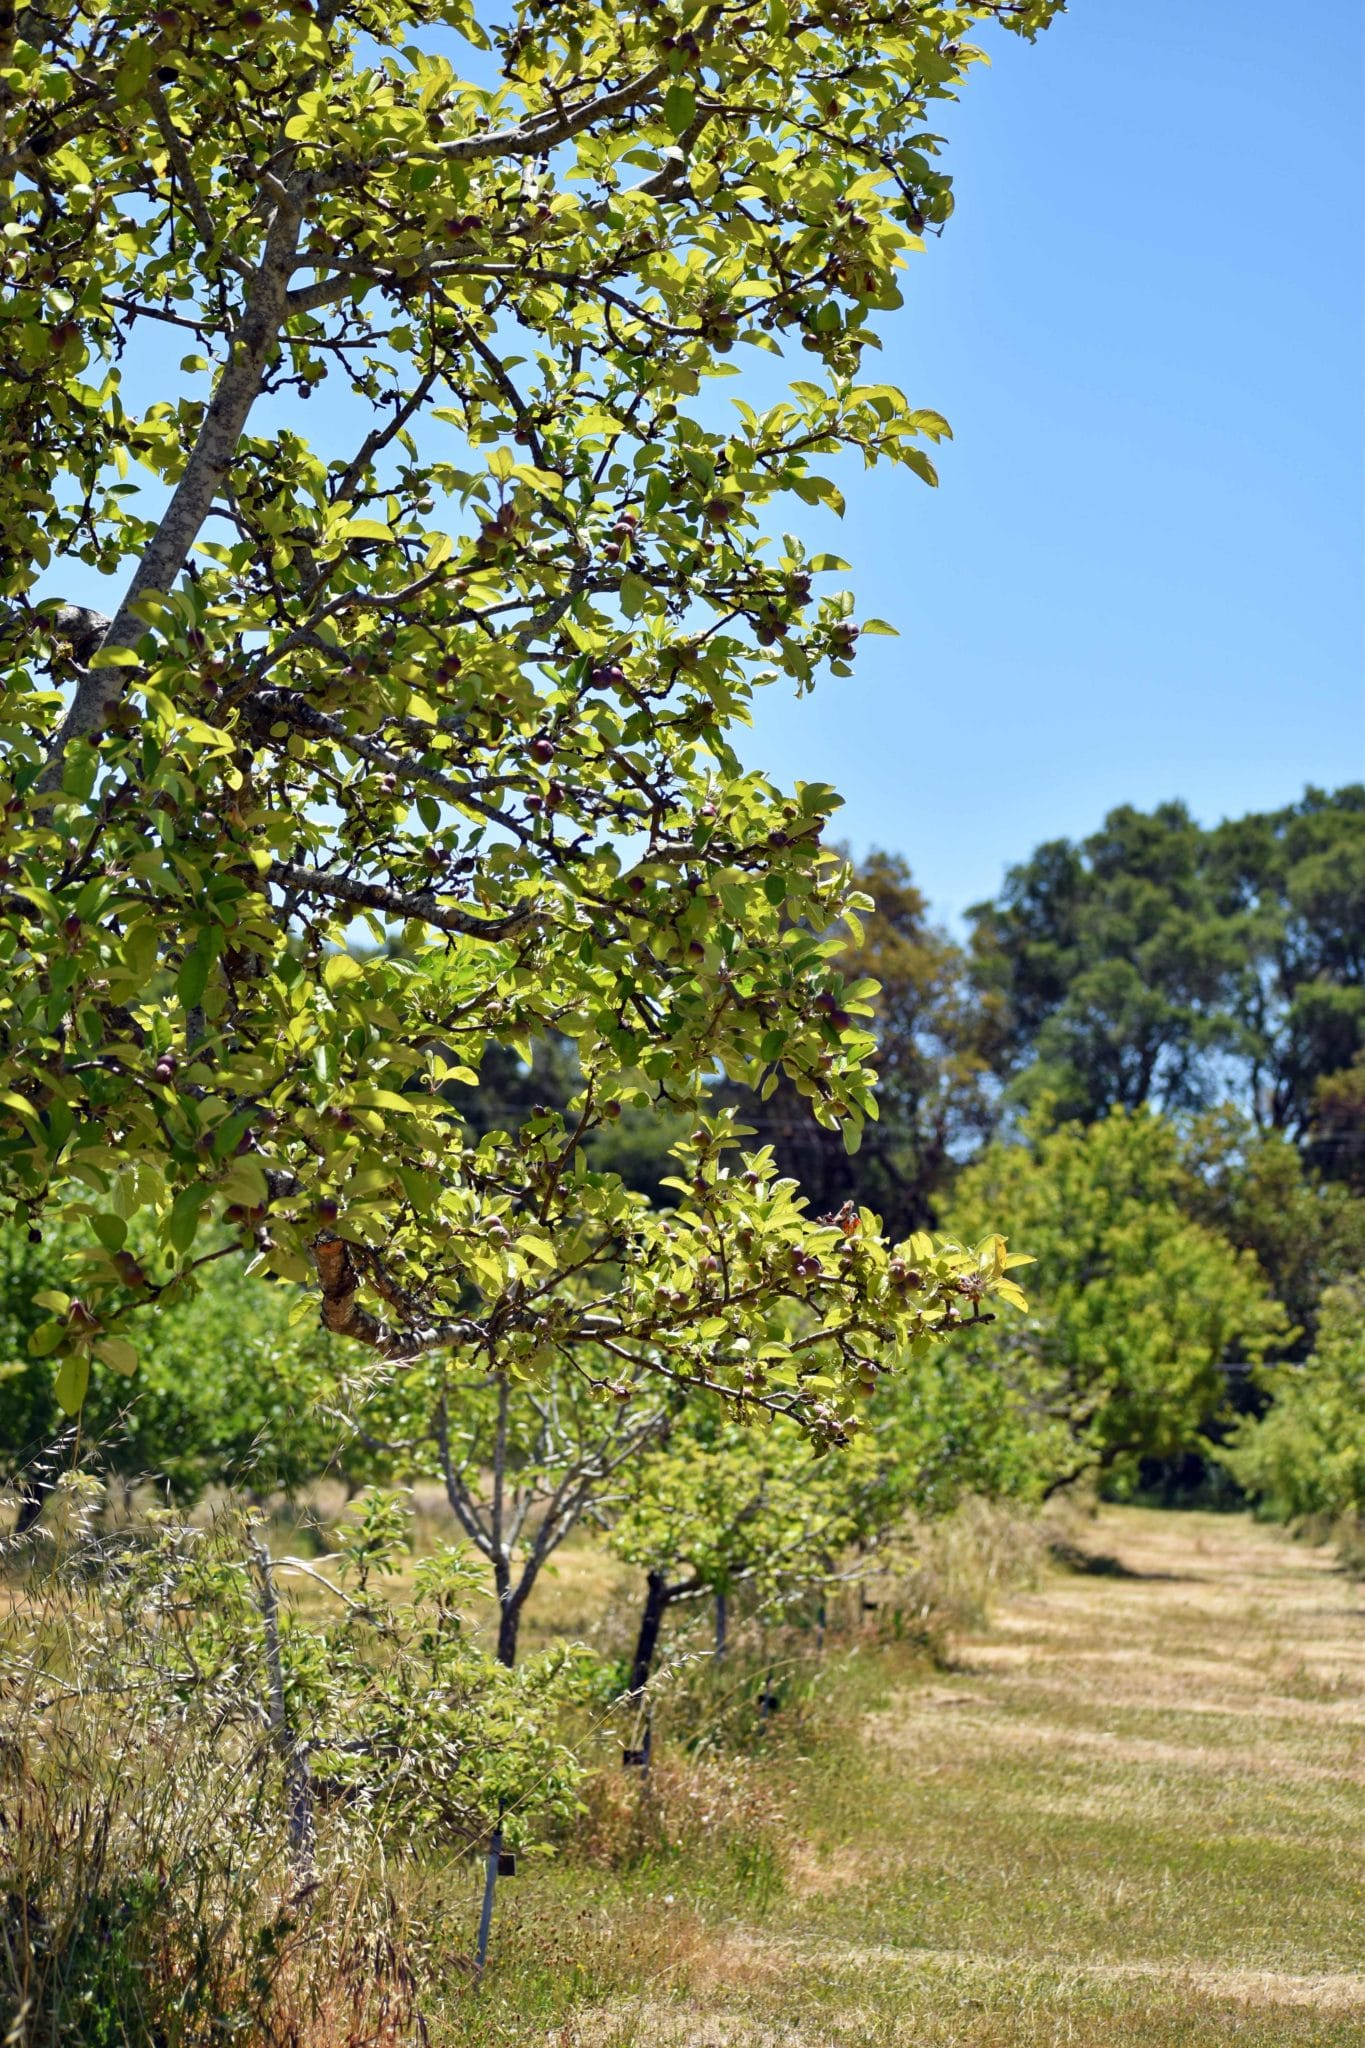 Looking Down An Orchard Path